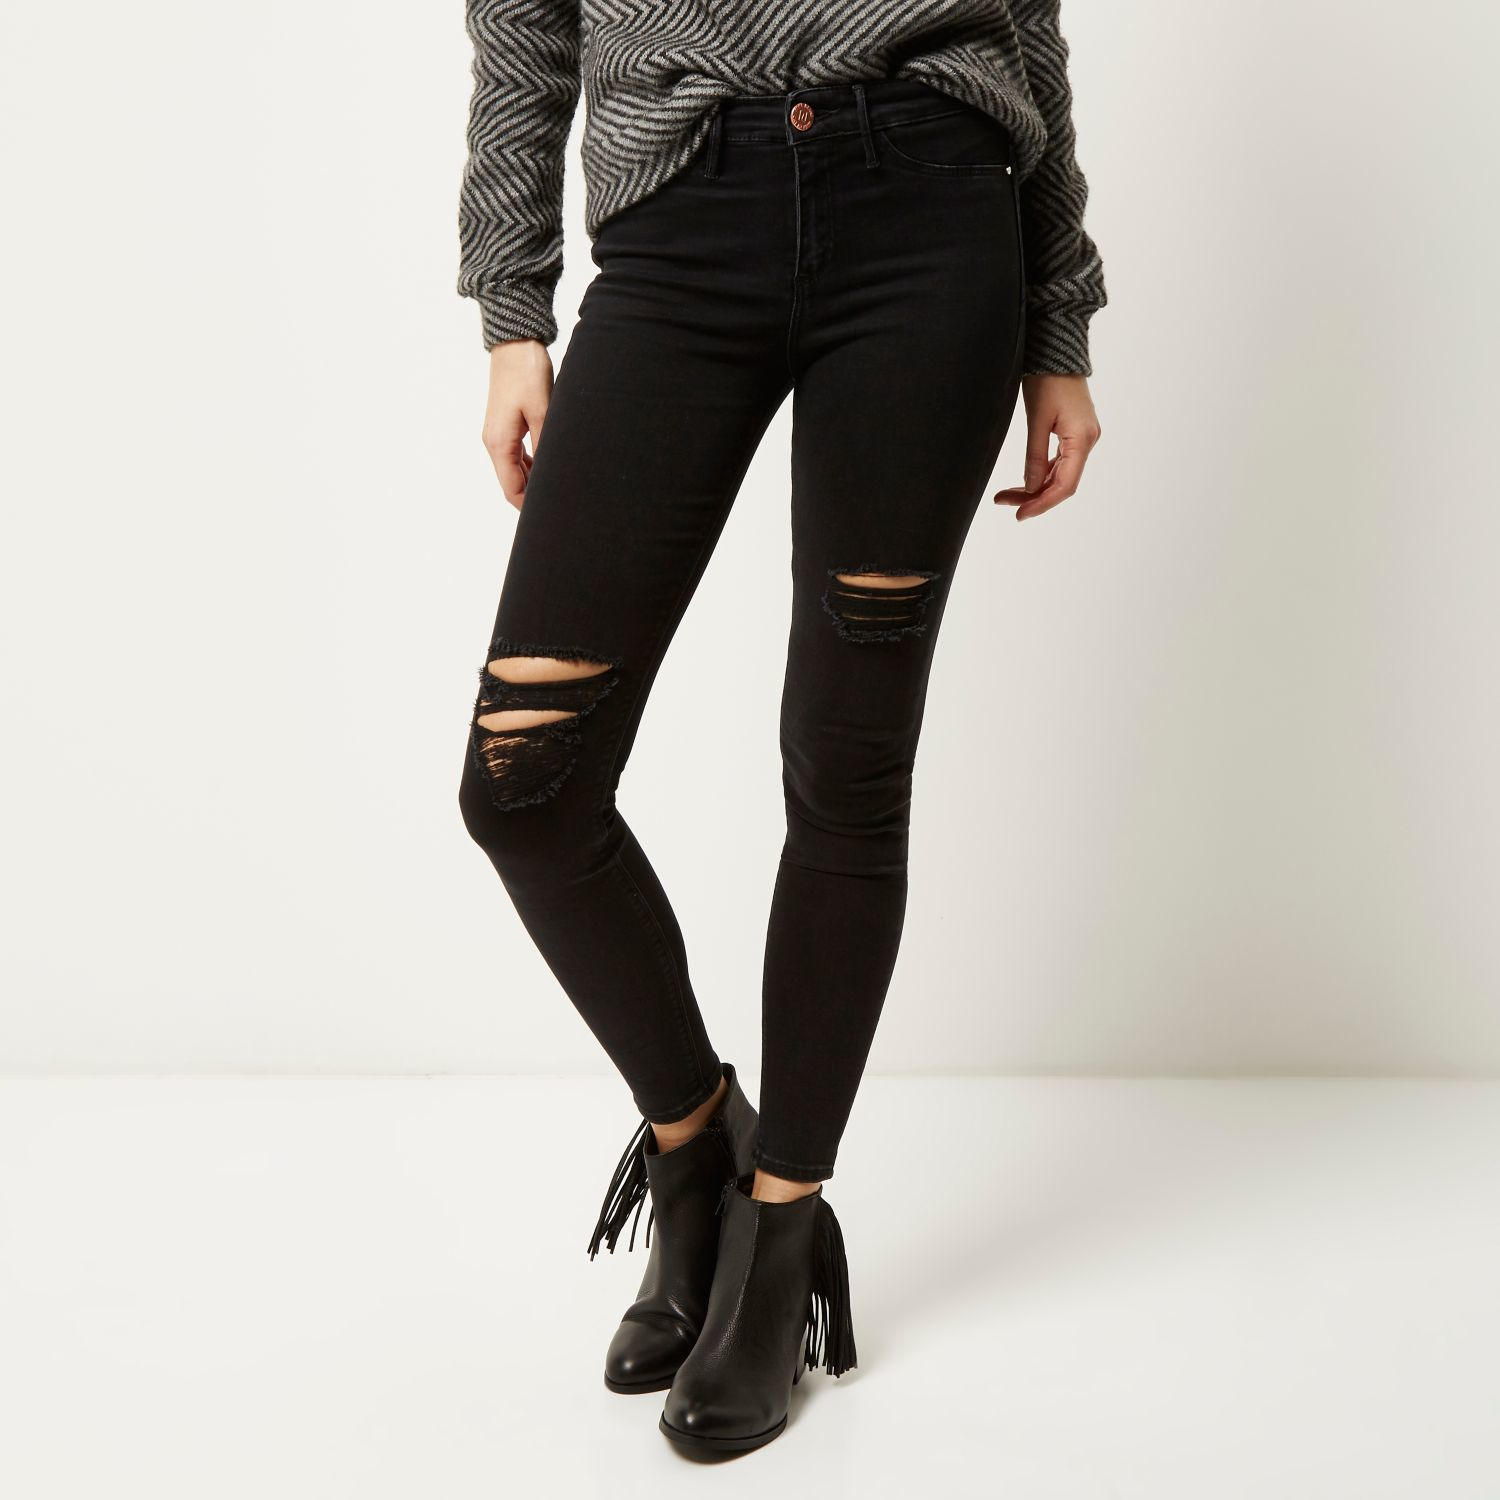 a27a6141765f7 River Island Washed Black Ripped Molly Jeggings in Black - Lyst